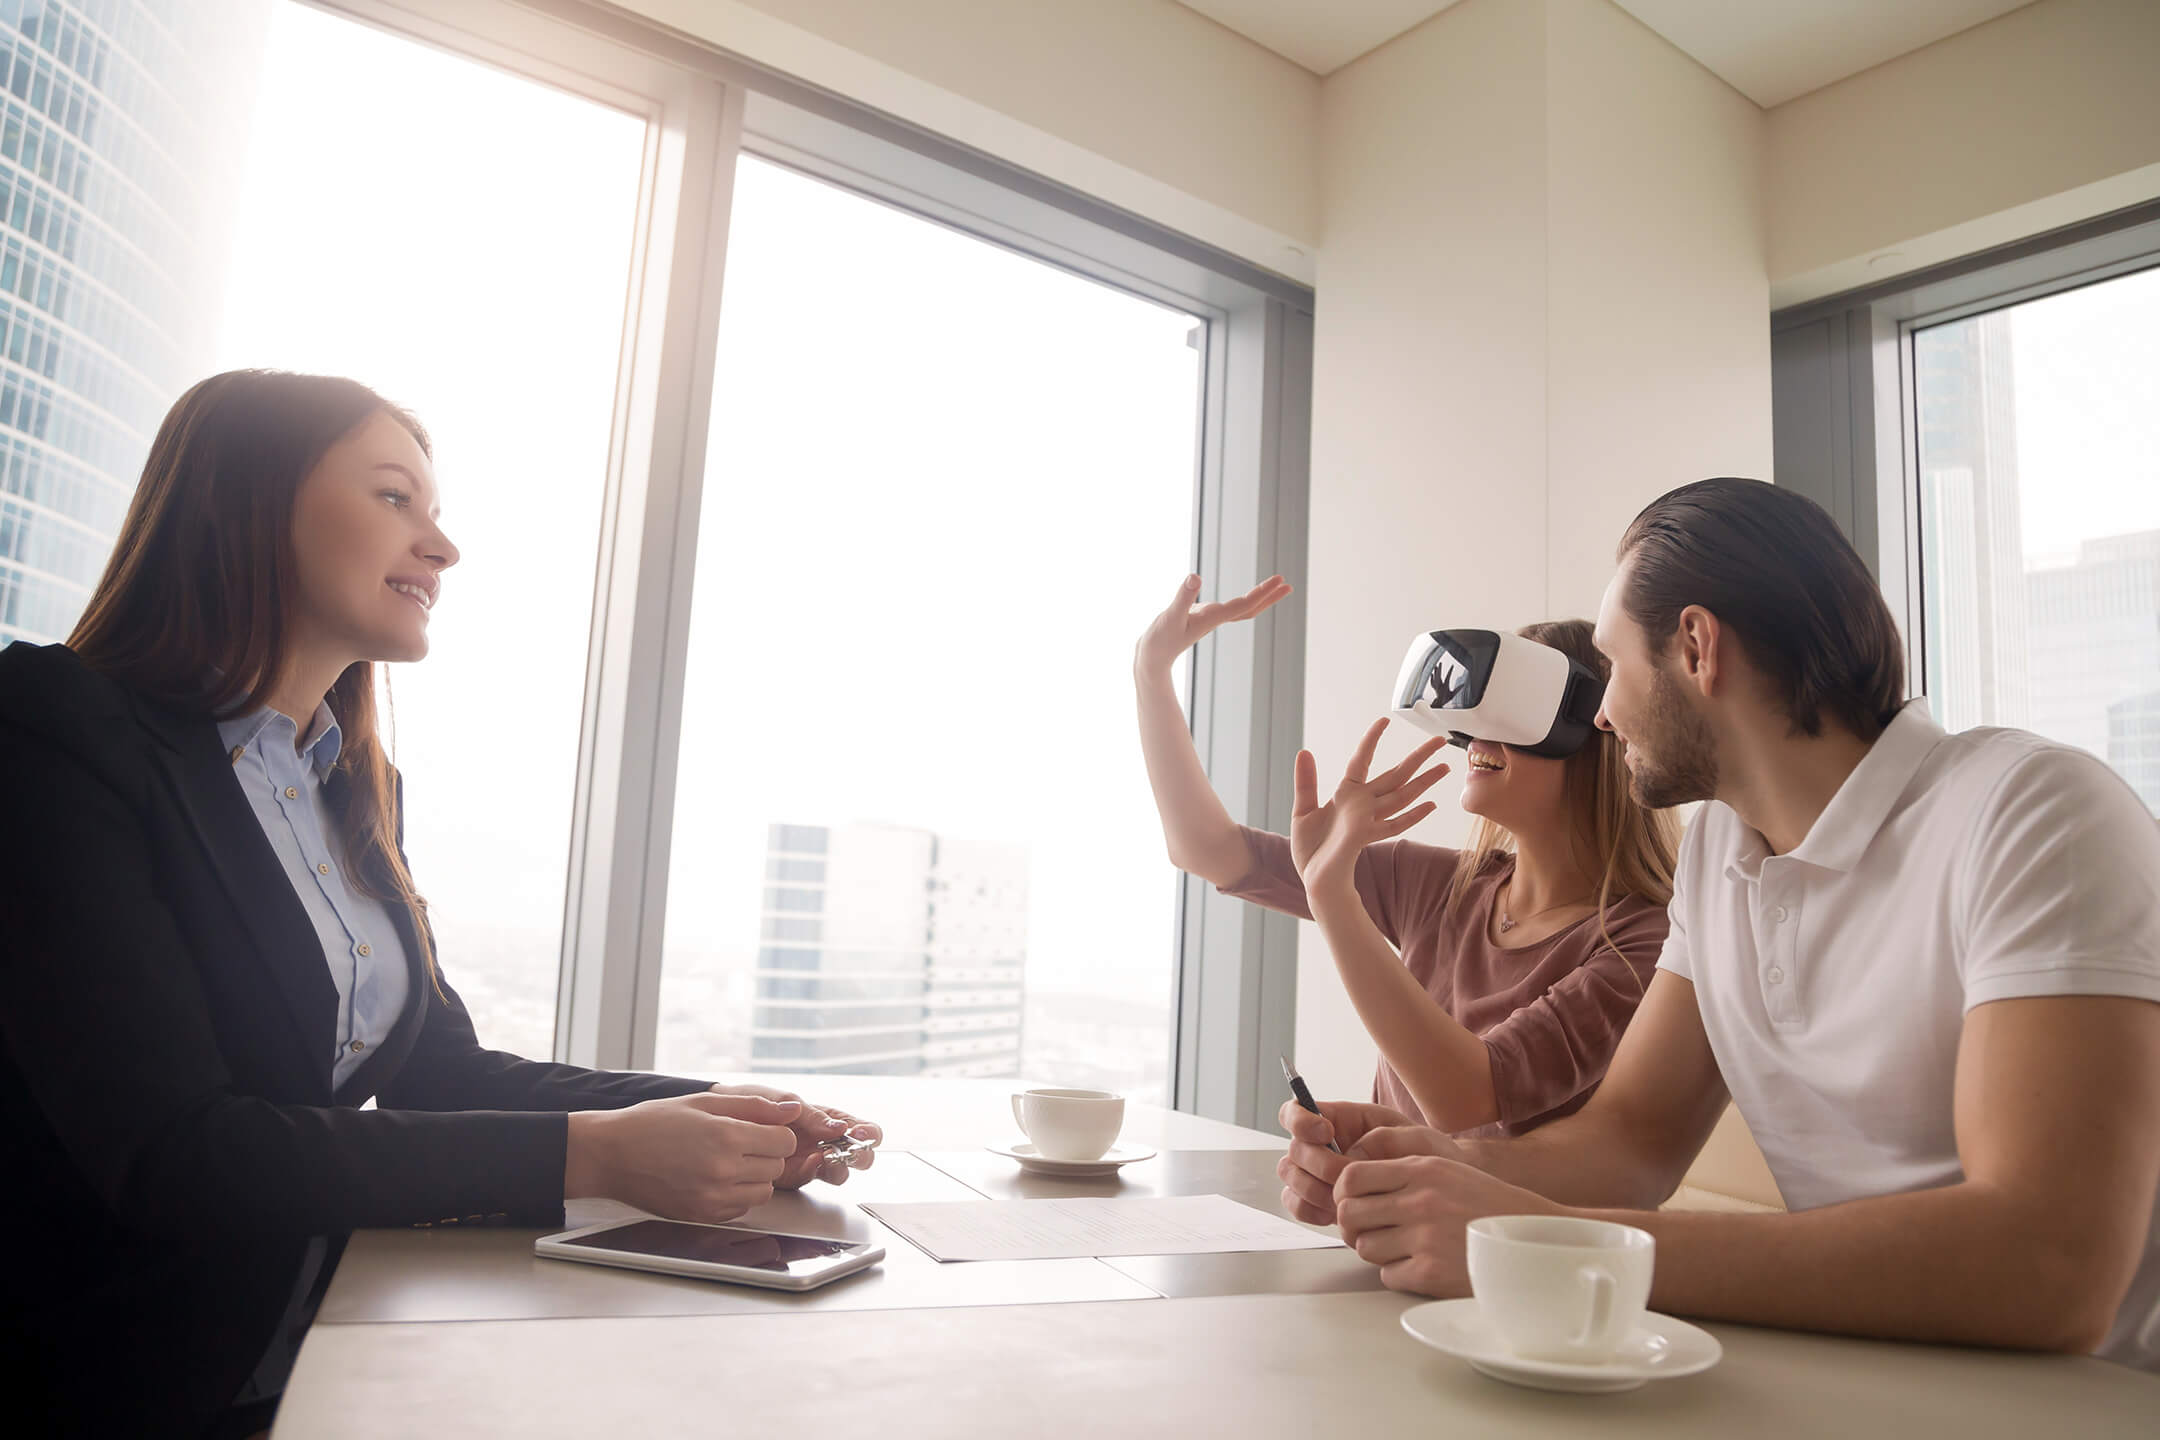 Prospects Having a VR Experience at a Real Estate Sales Office